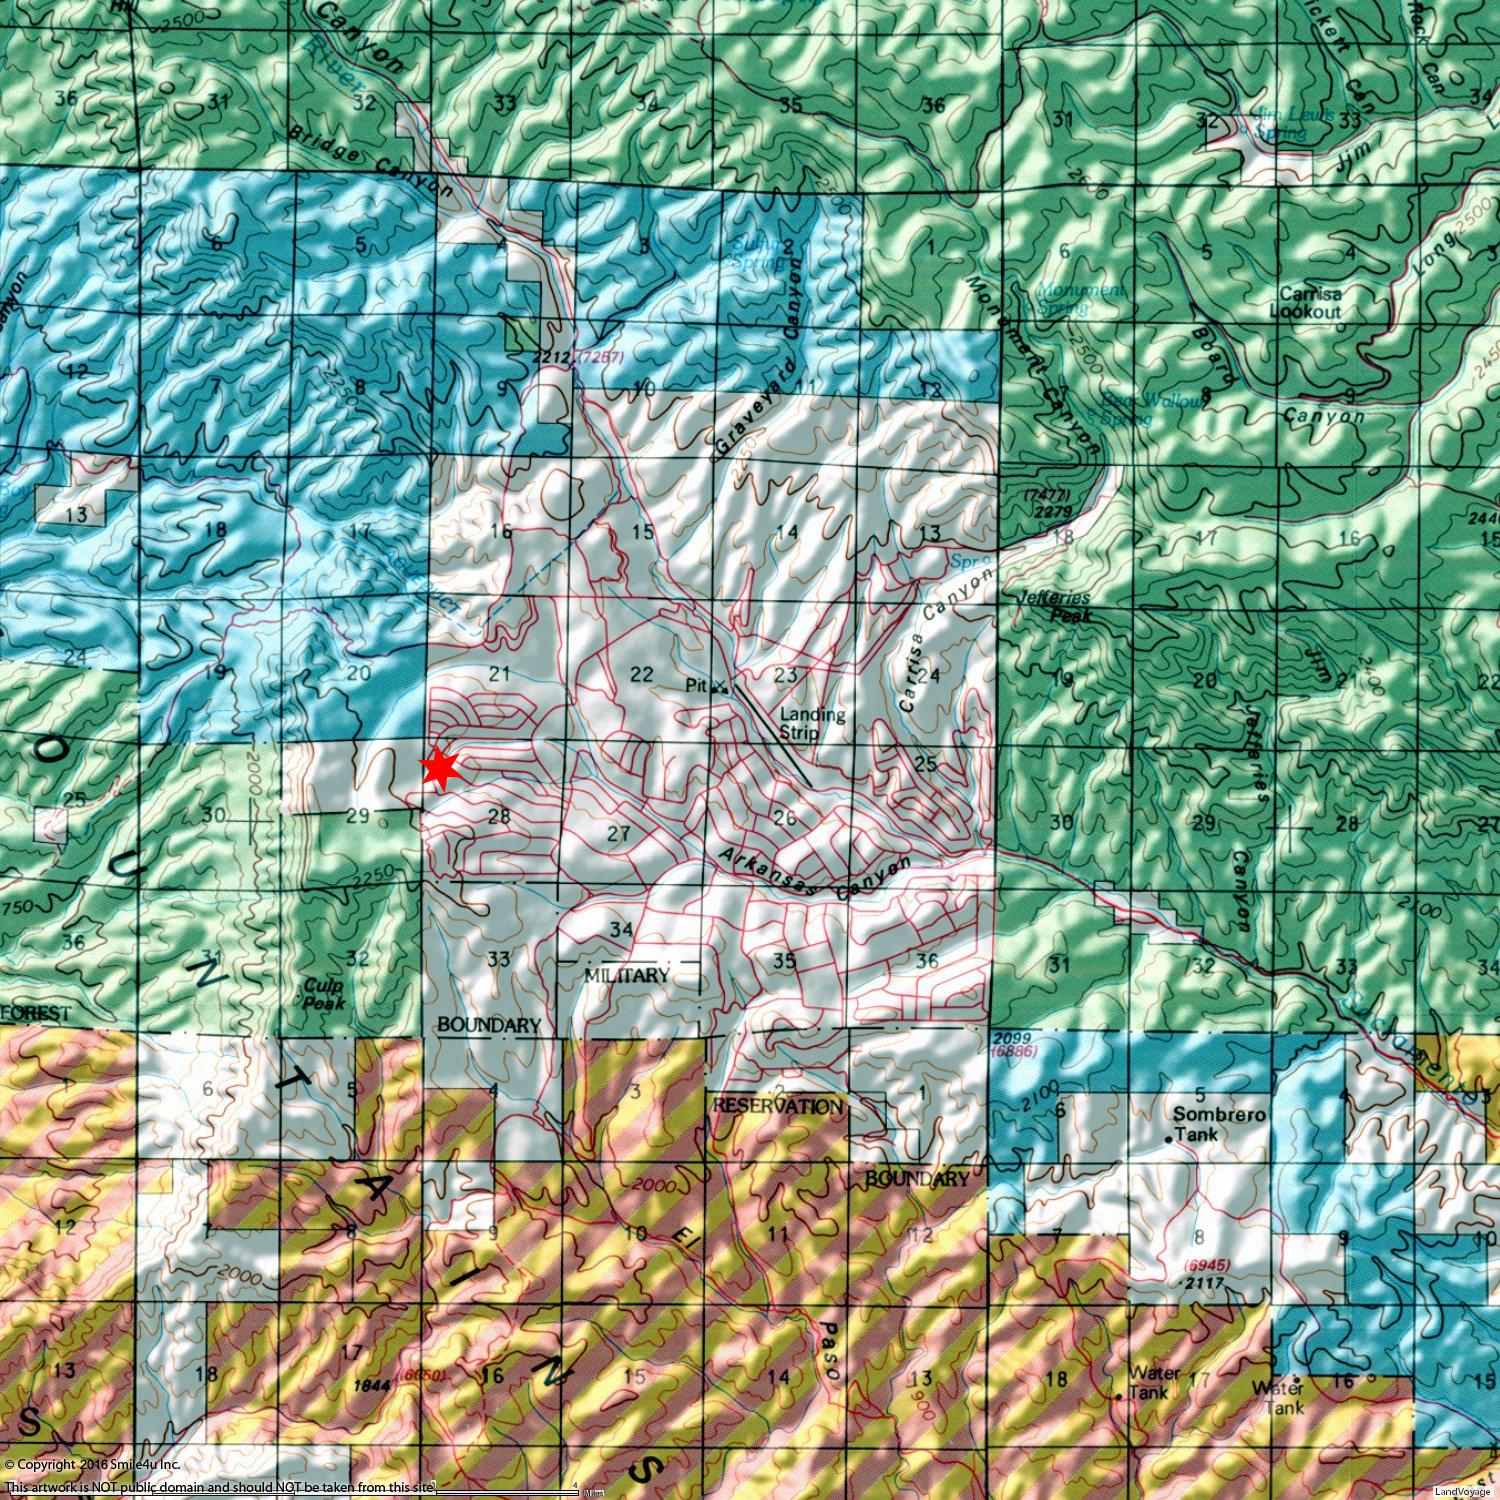 911748_watermarked_Timberon BLM Map.jpg